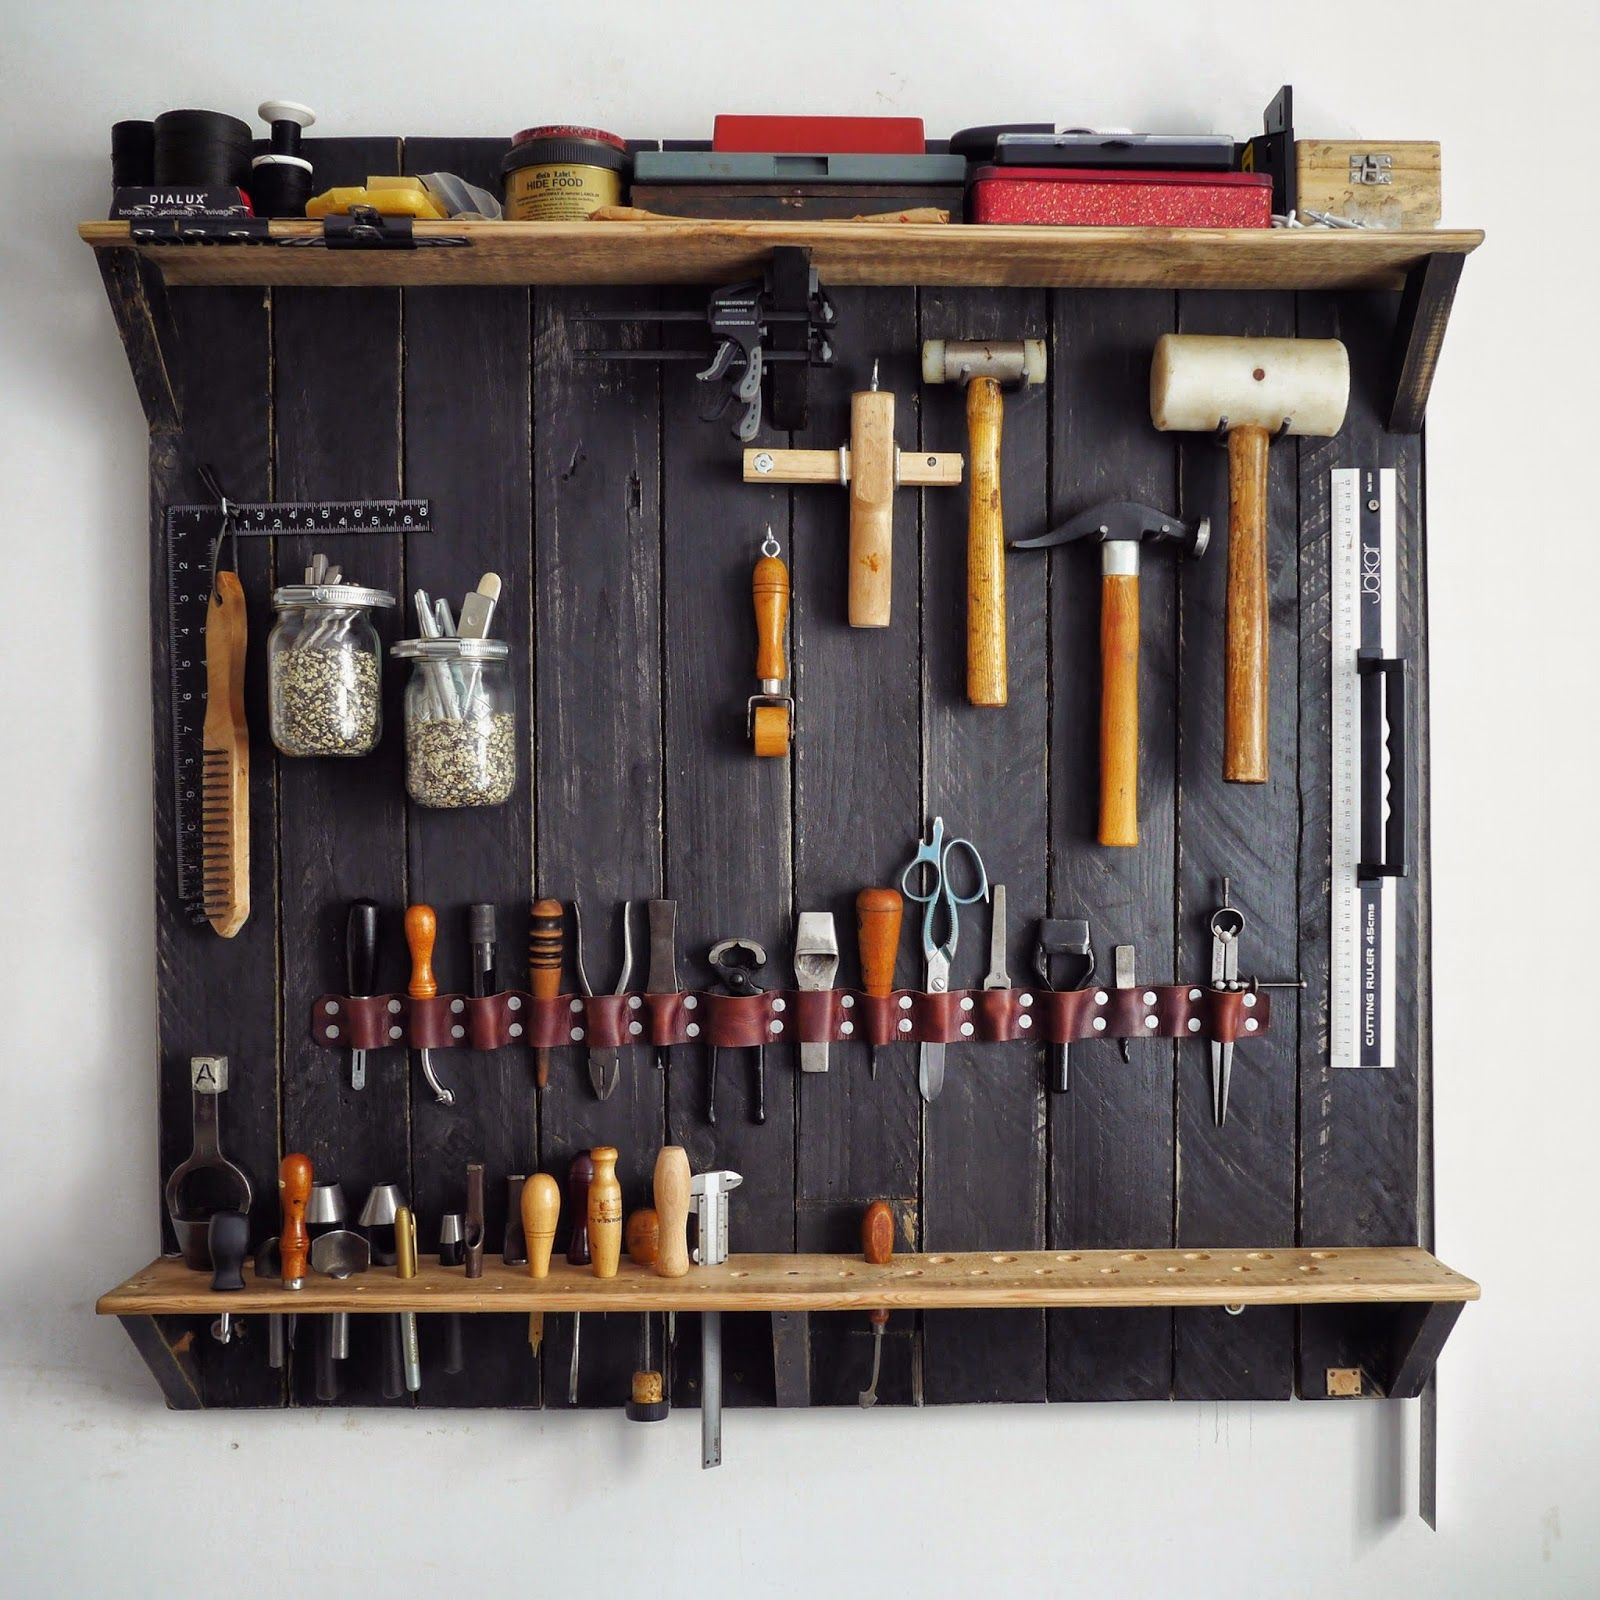 a wall mounted rack for my leatherworking tools organization pinterest atelier tablis et. Black Bedroom Furniture Sets. Home Design Ideas